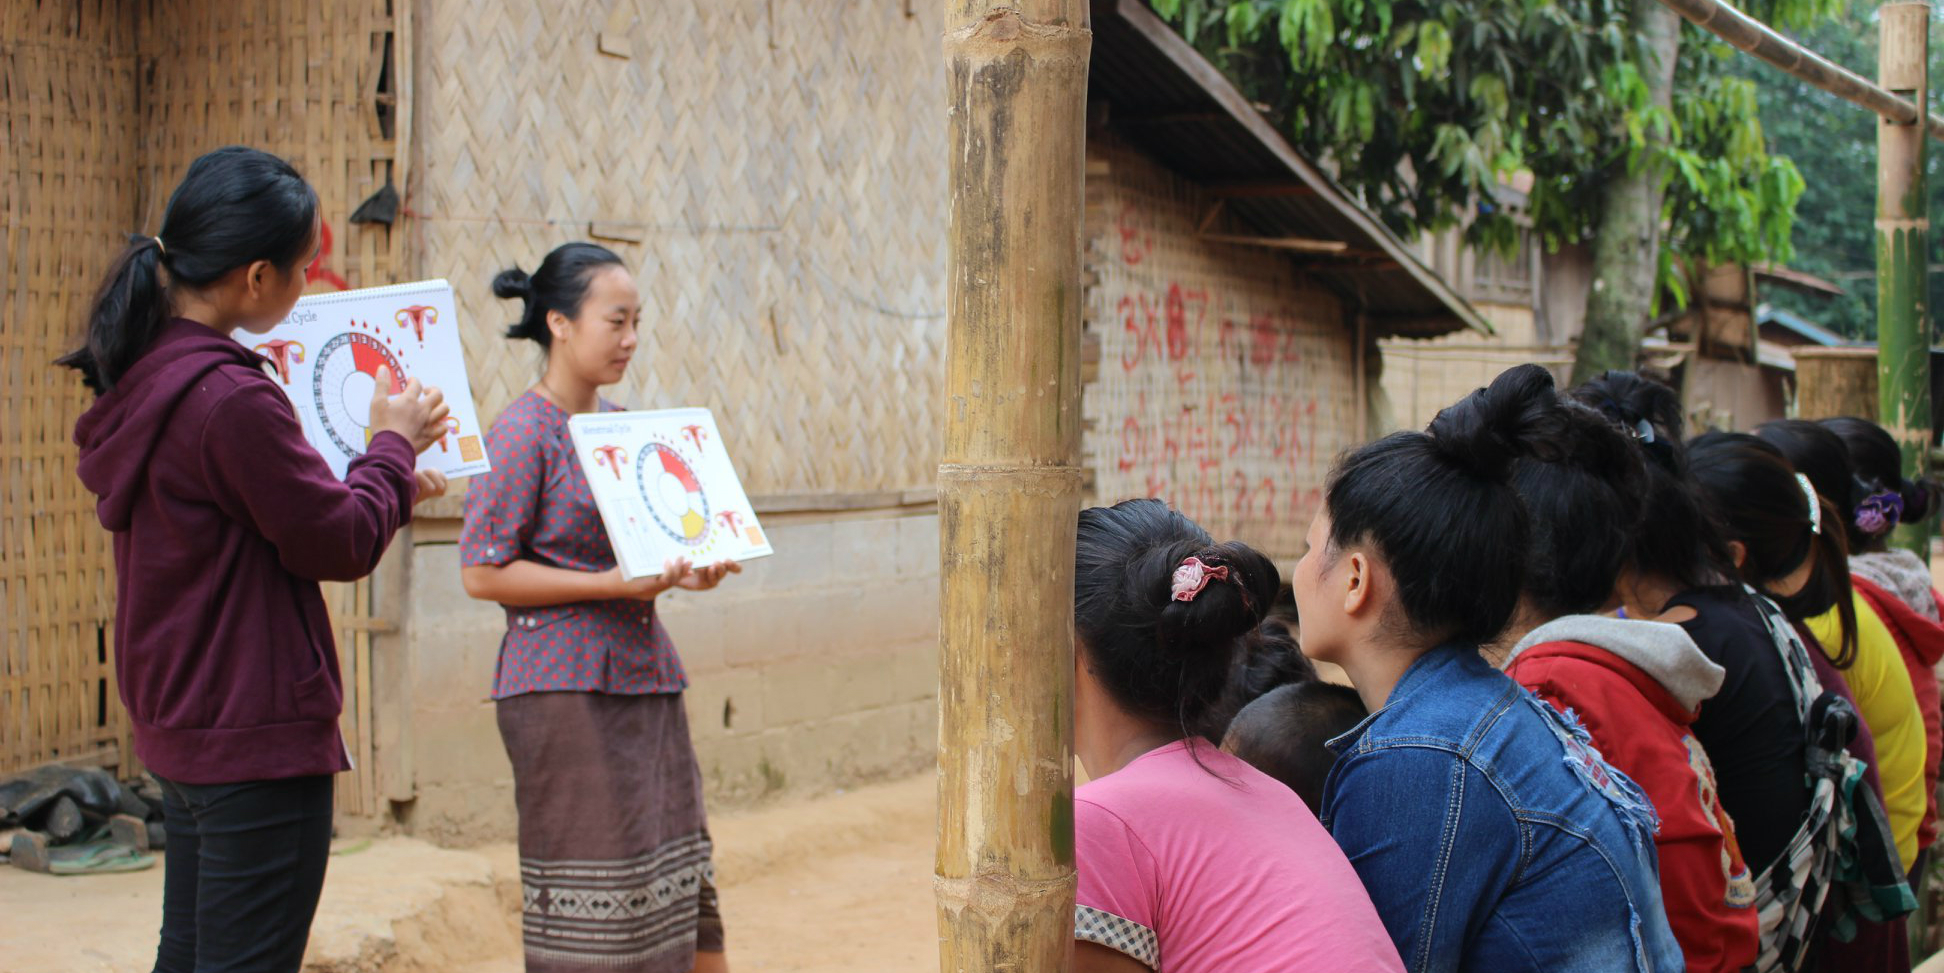 Local women lead a session on menstrual health education in Laos   donate or volunteer